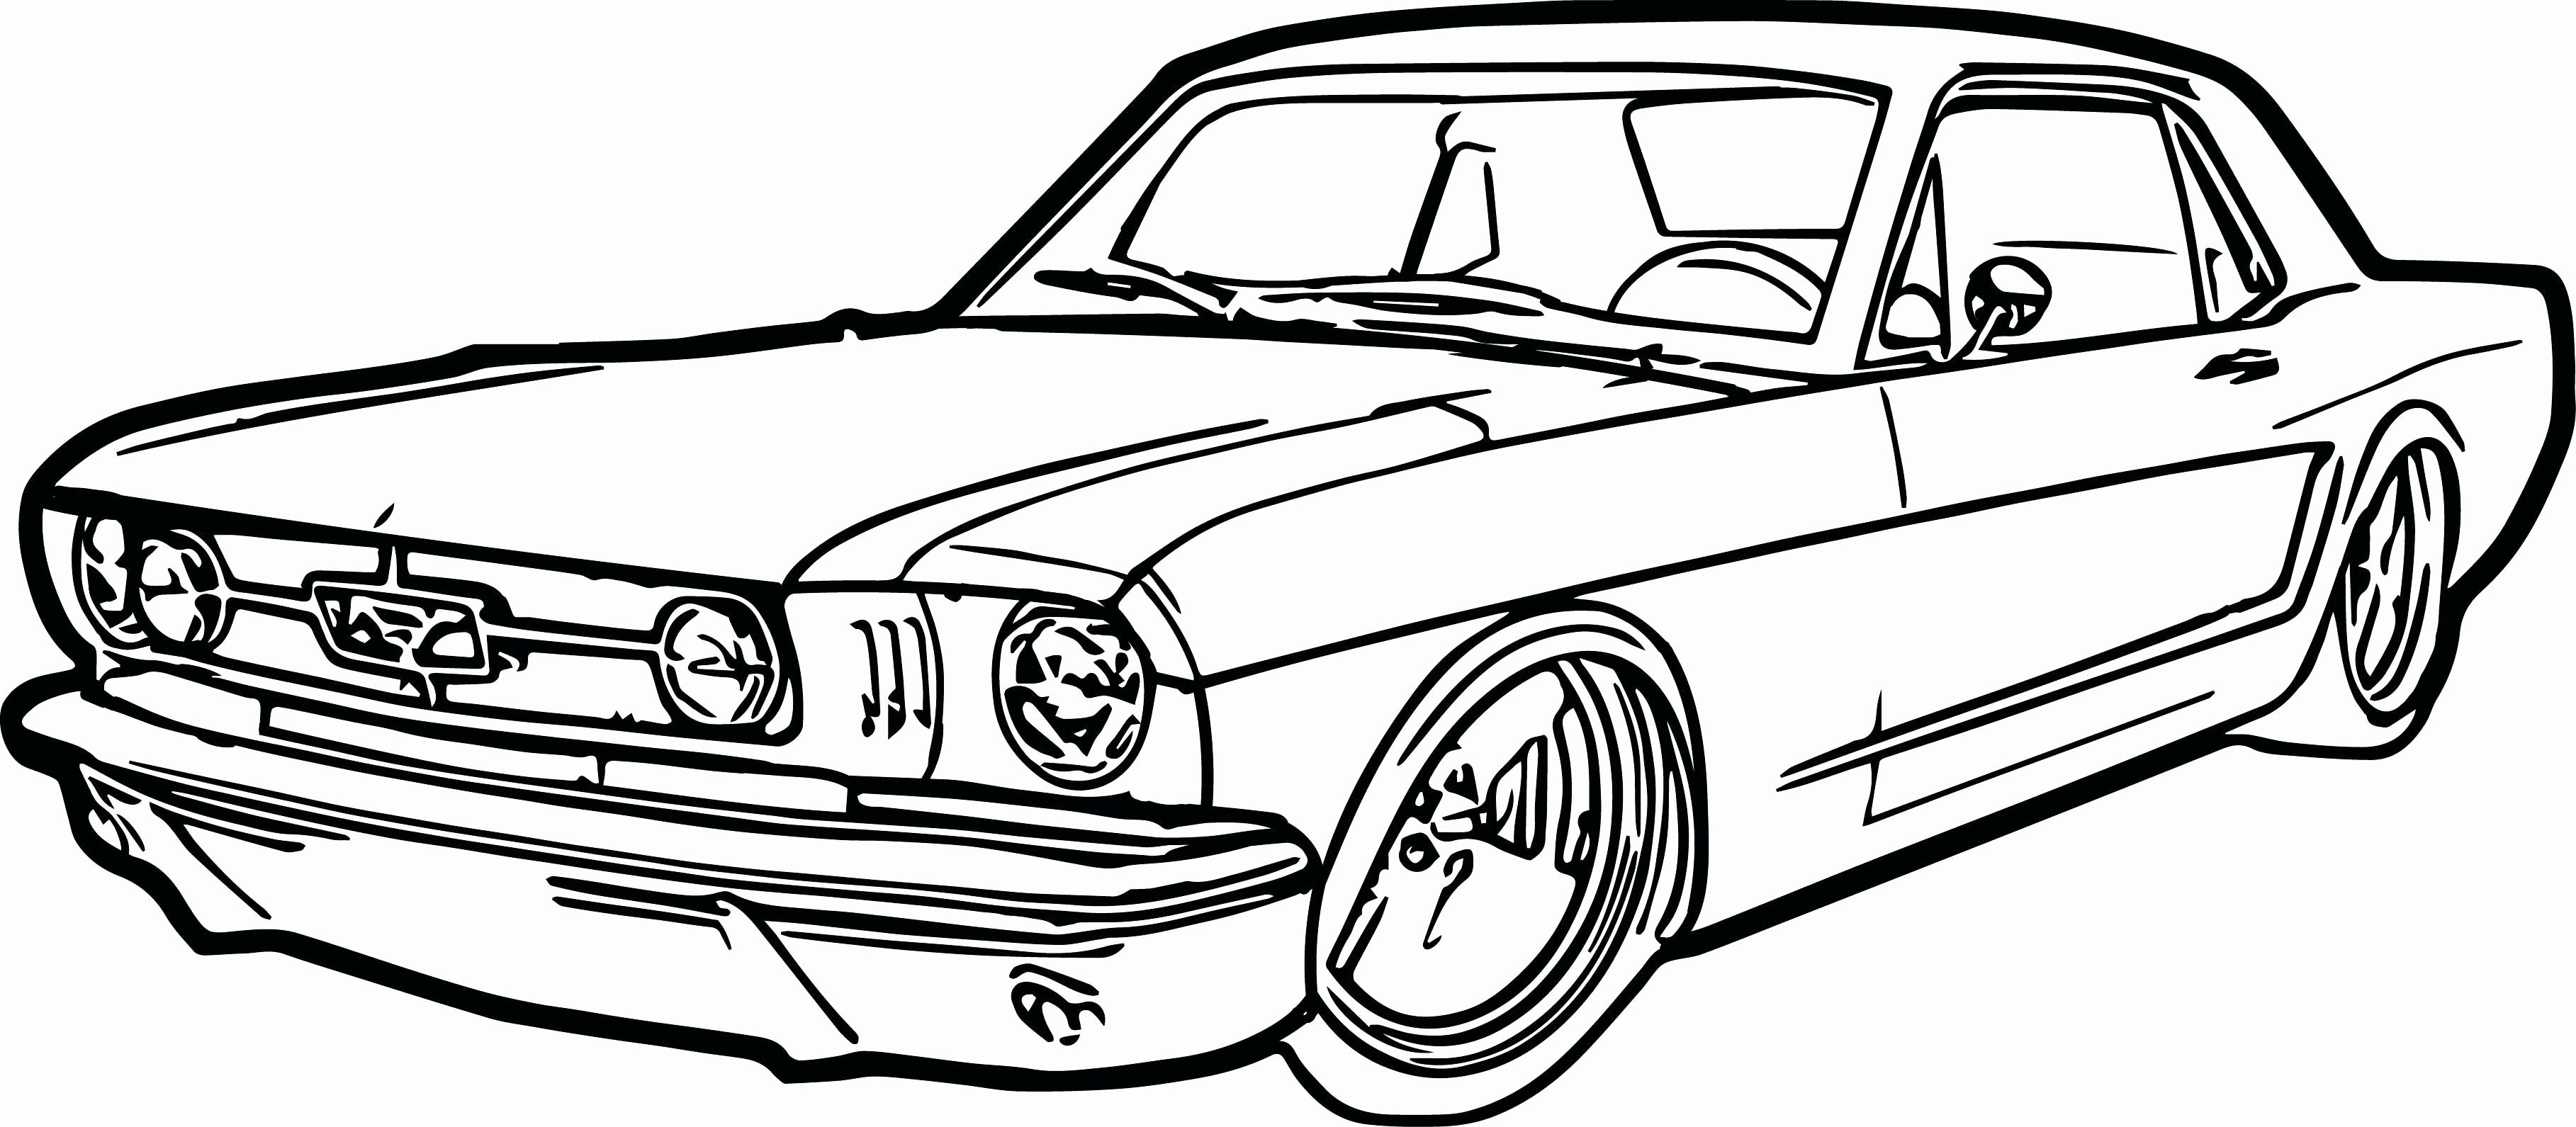 Drag Car Coloring Pages At Getcolorings